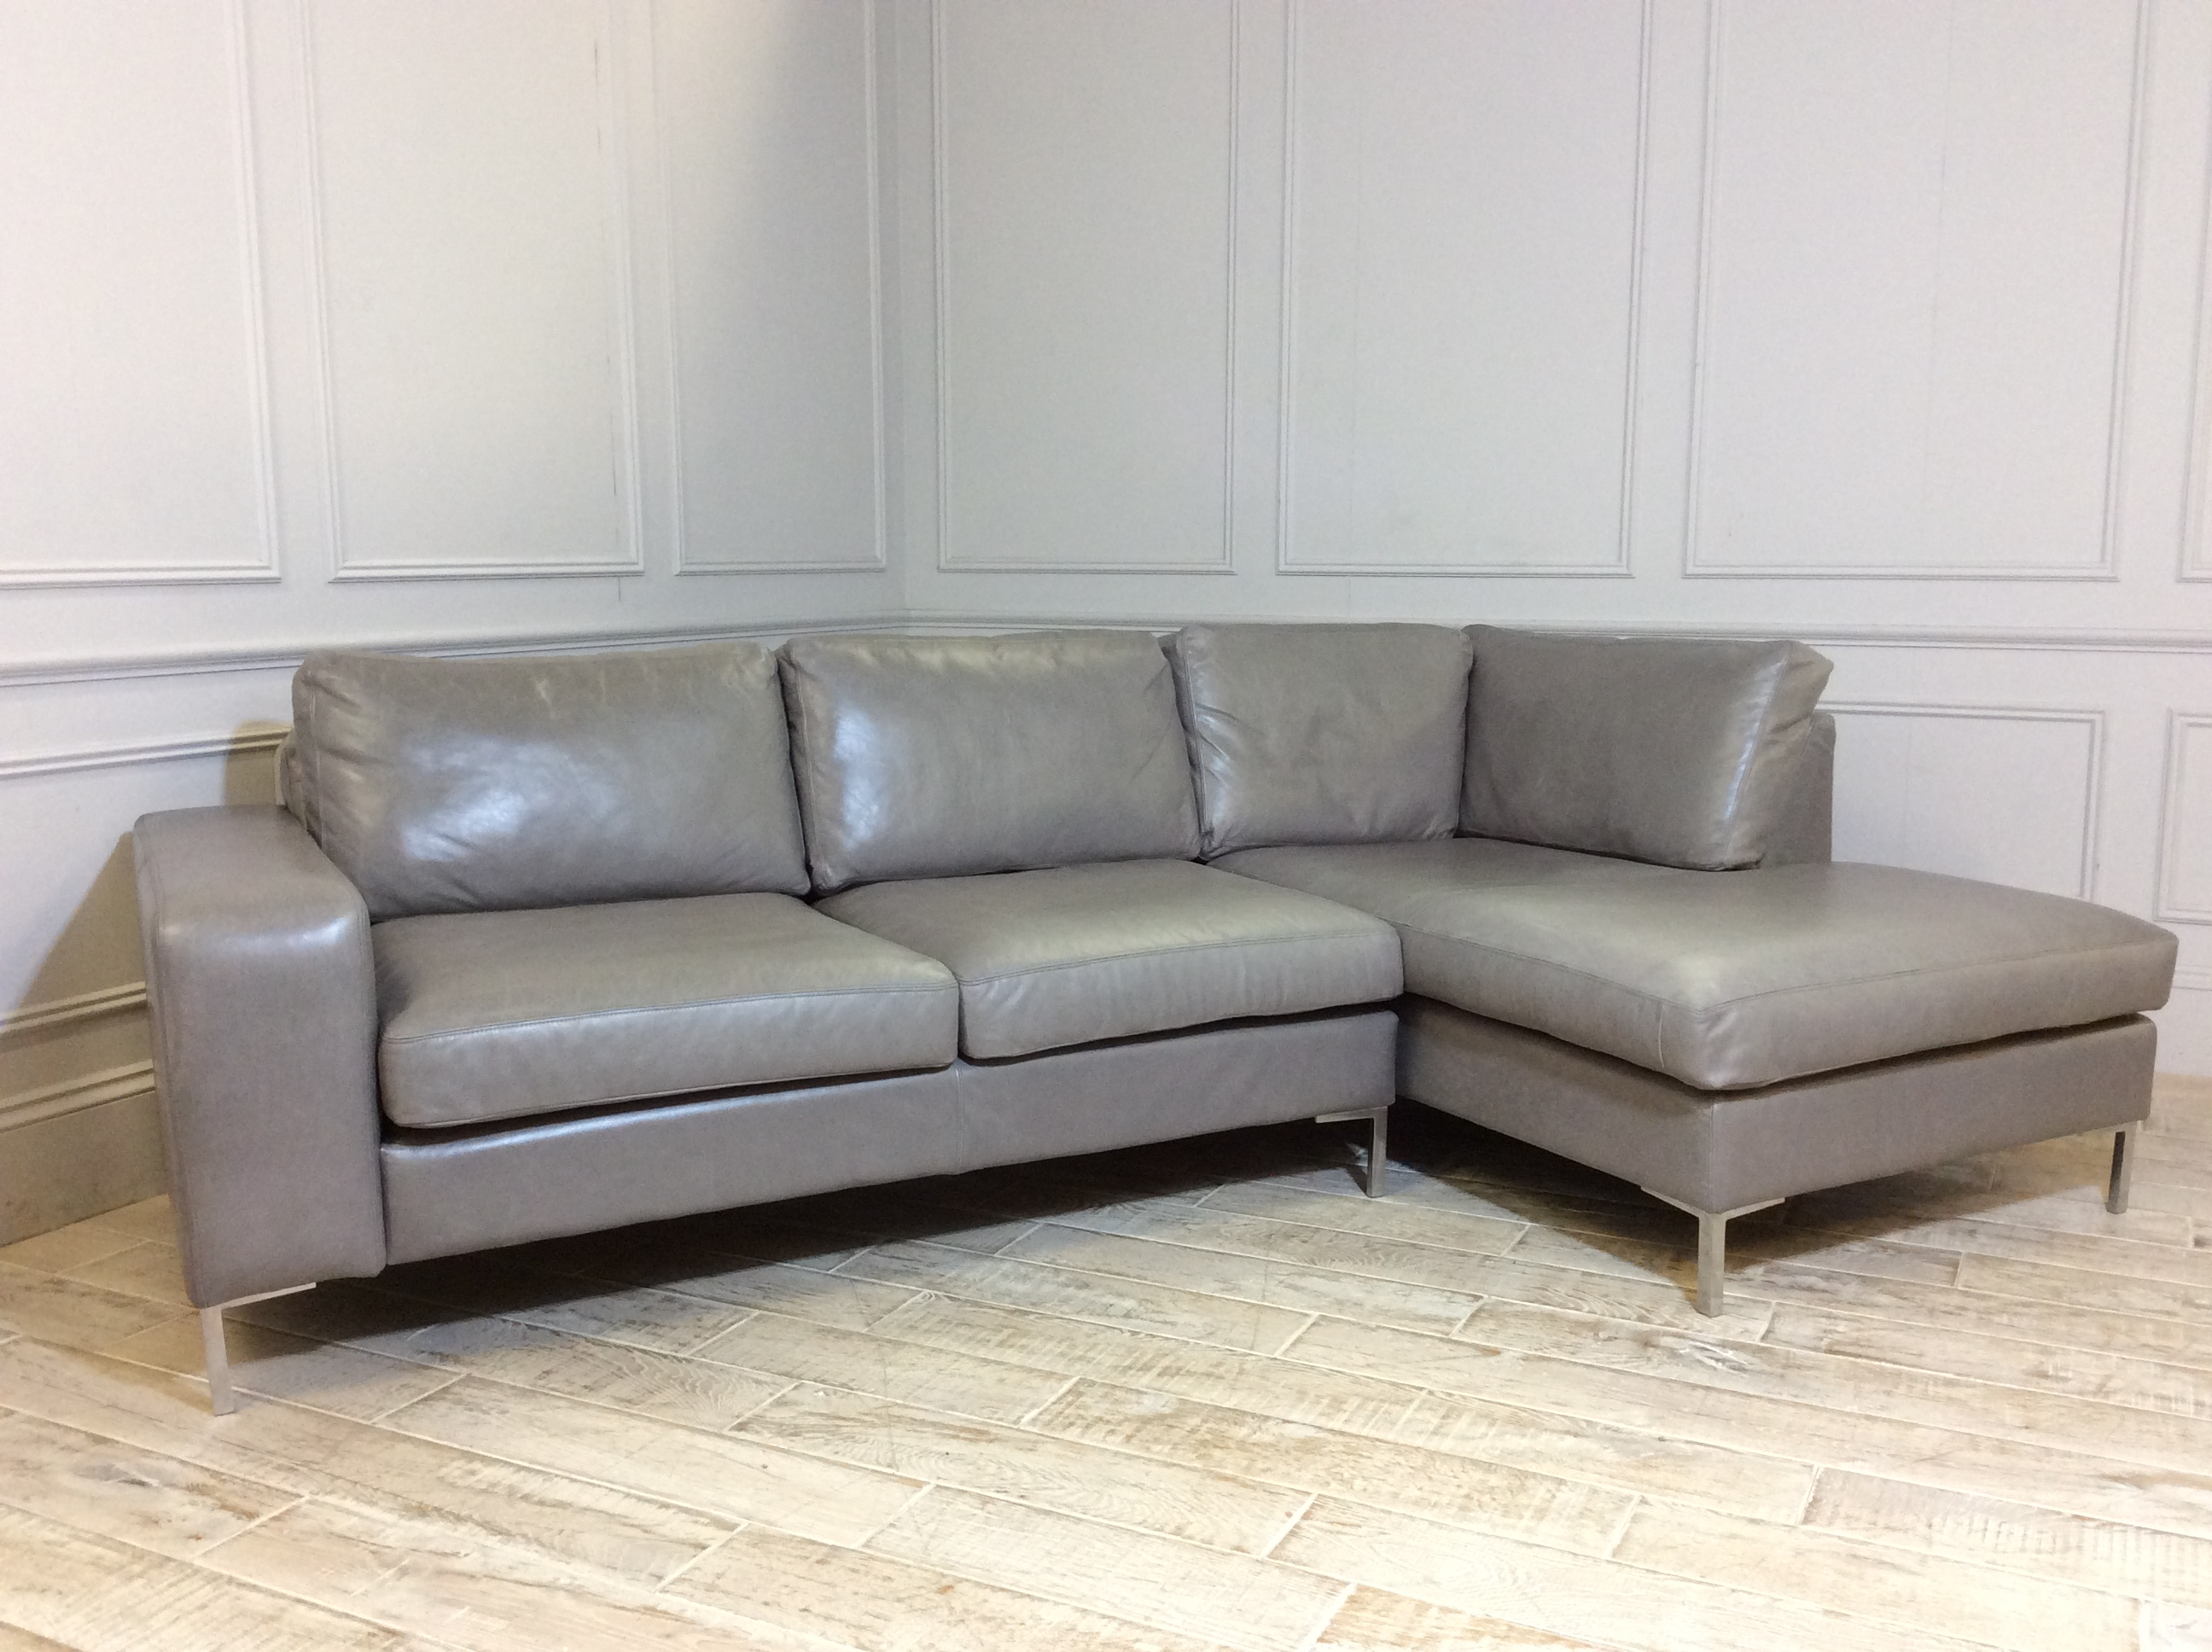 Kingly 3 Seater Leather Sofa with Chaise in Slate